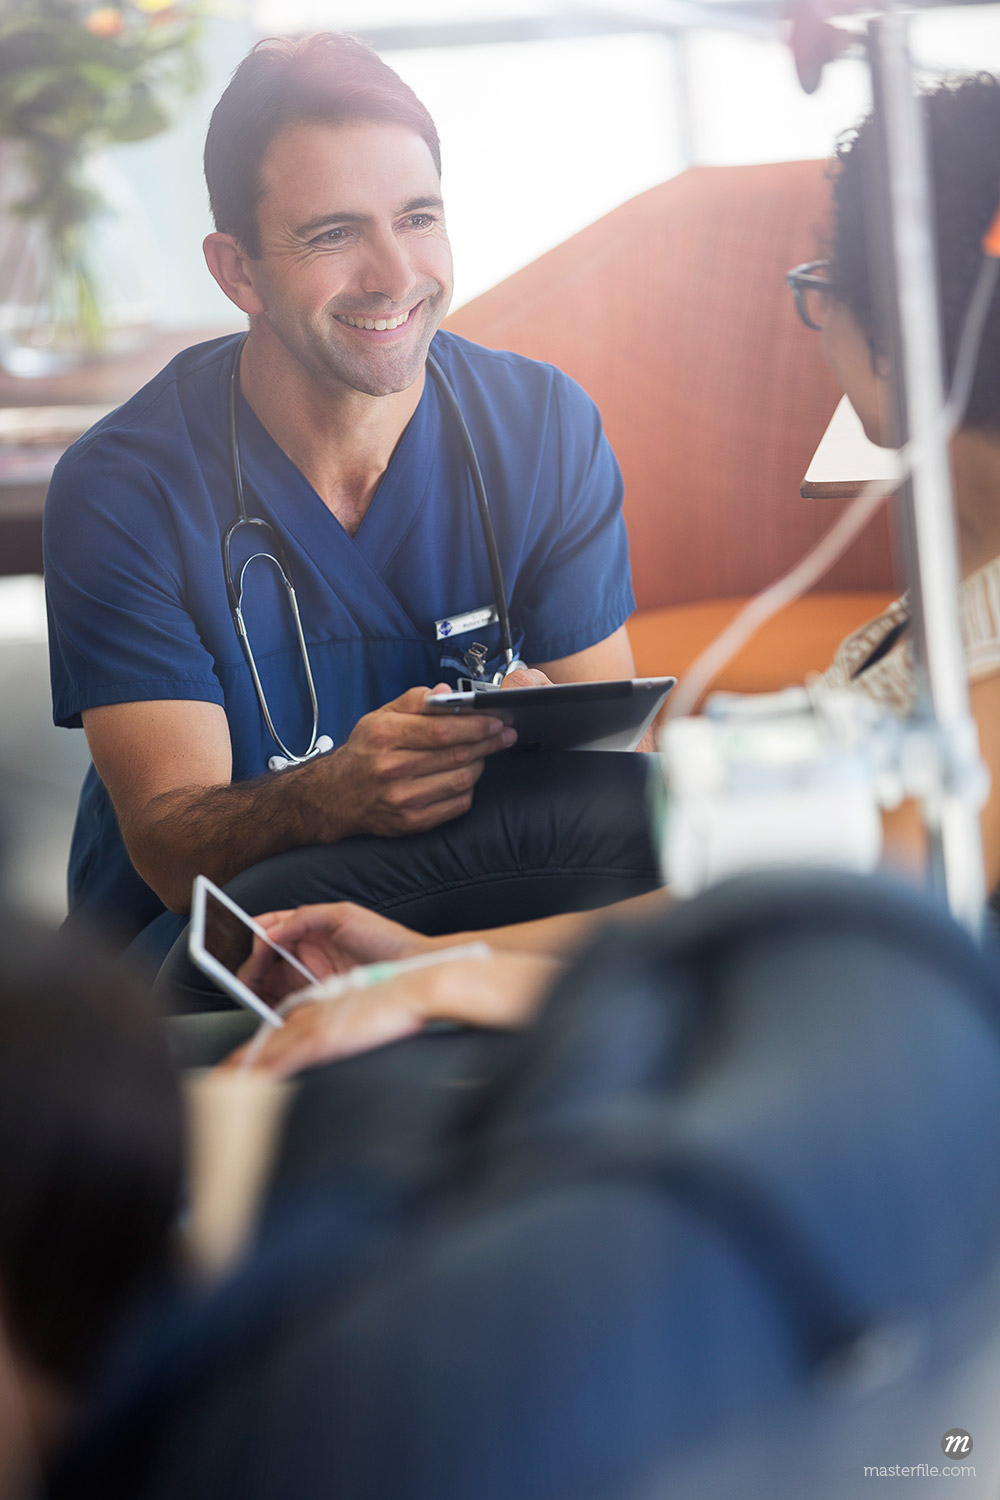 Doctor holding digital tablet, talking to patient © Masterfile